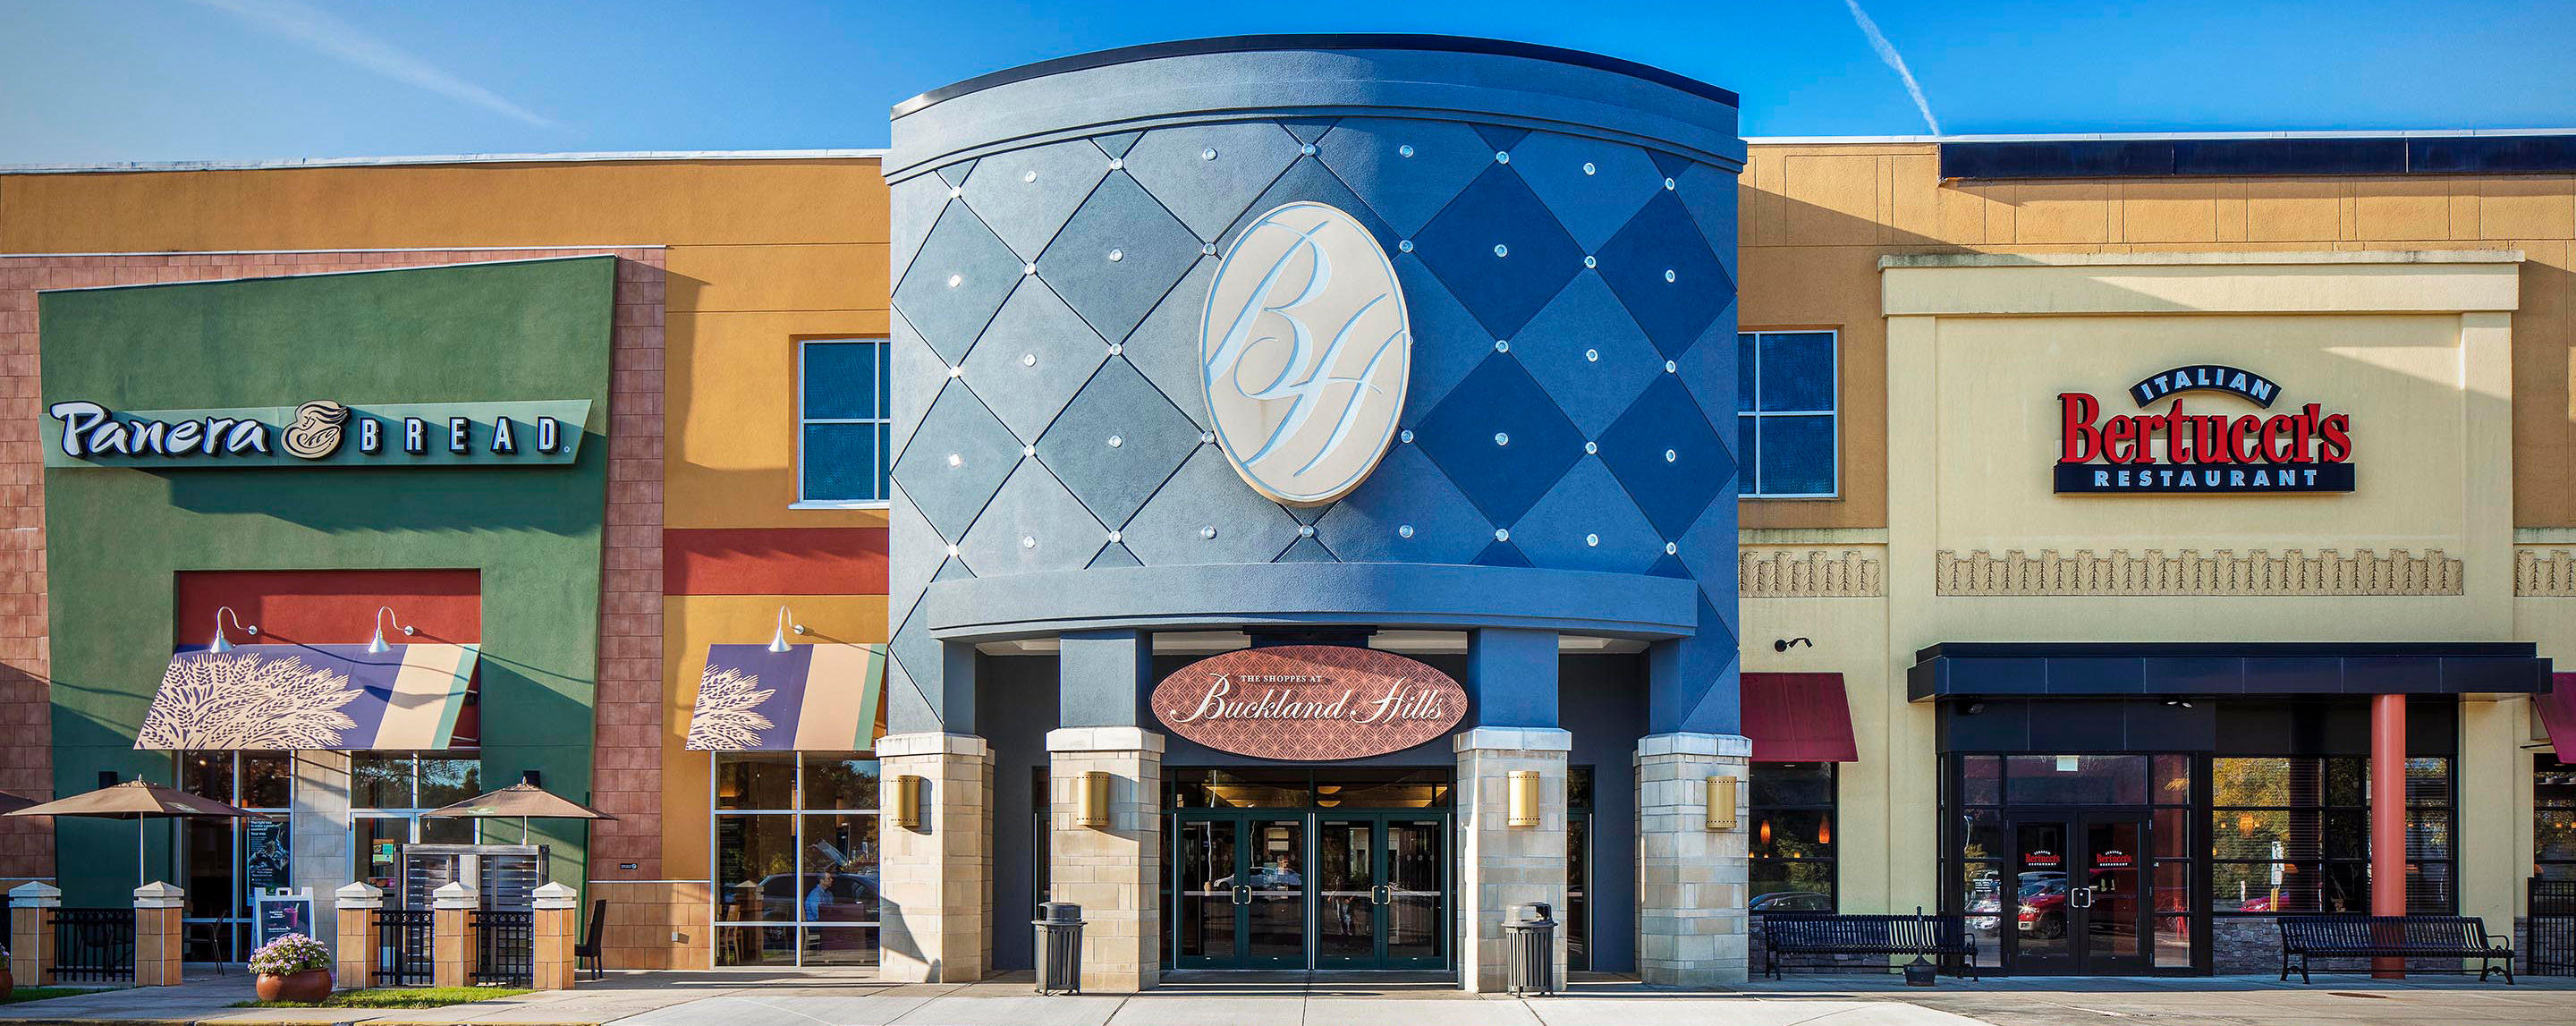 The Shoppes at Buckland Hills image 1